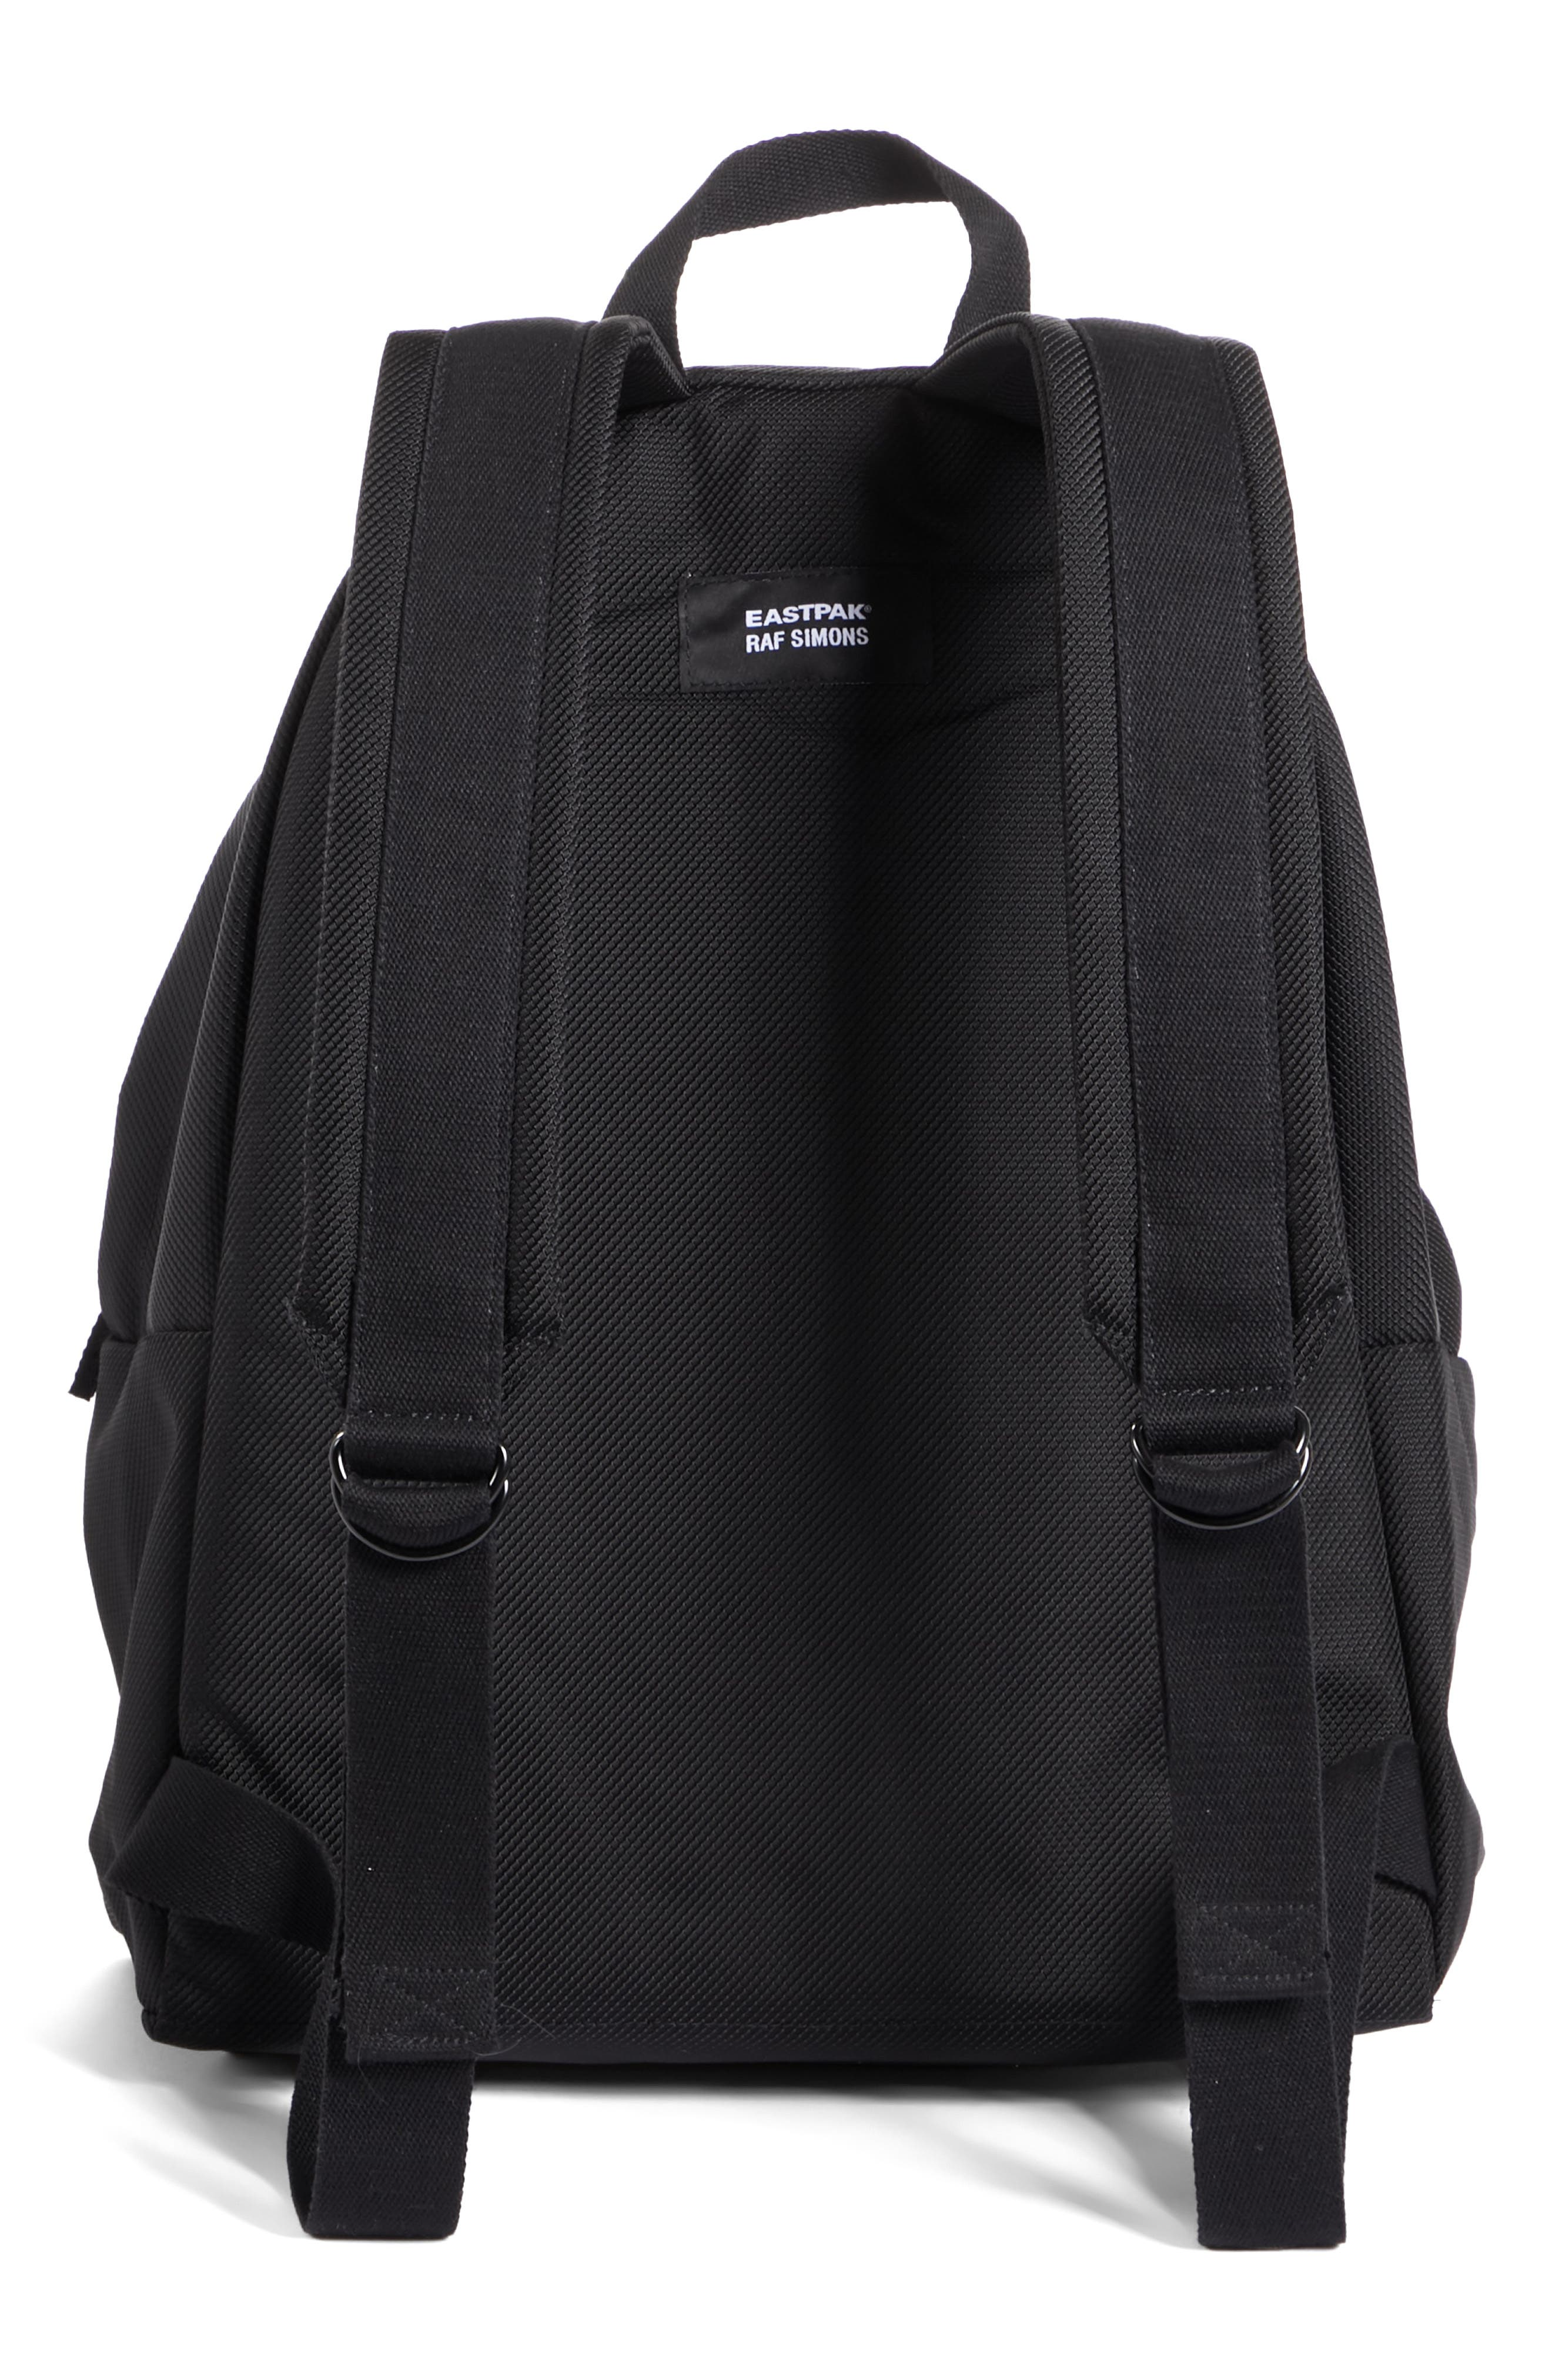 Eastpak x Raf Simons Classic Structured Backpack,                             Alternate thumbnail 3, color,                             001